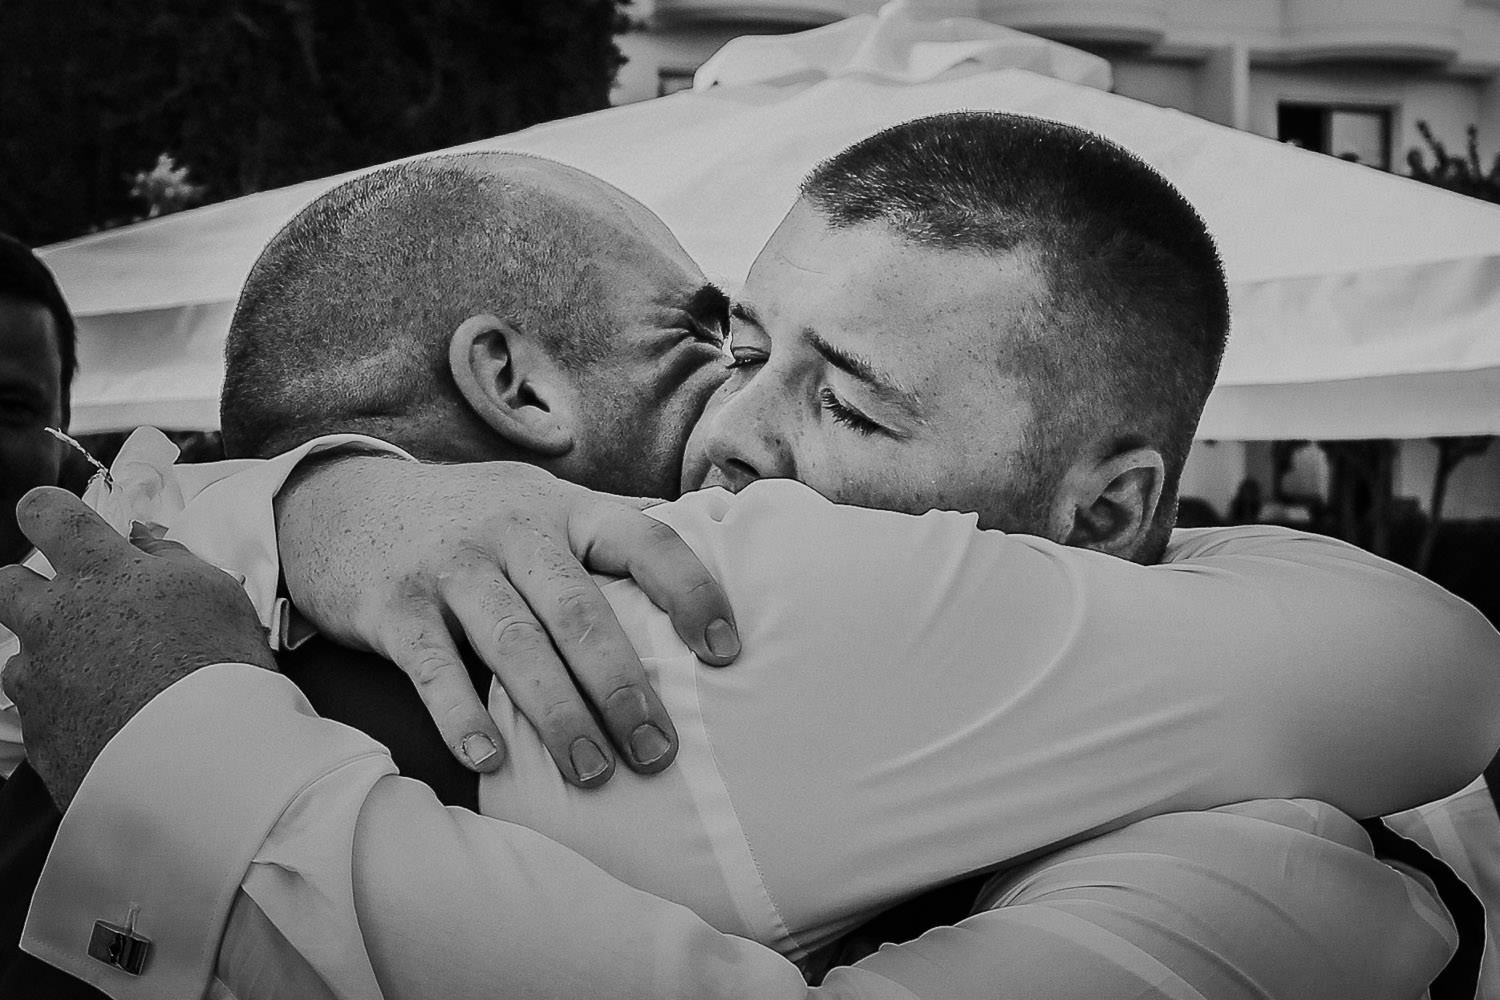 father son embrace and cry at wedding in Cyprus at Annabelle Hotel